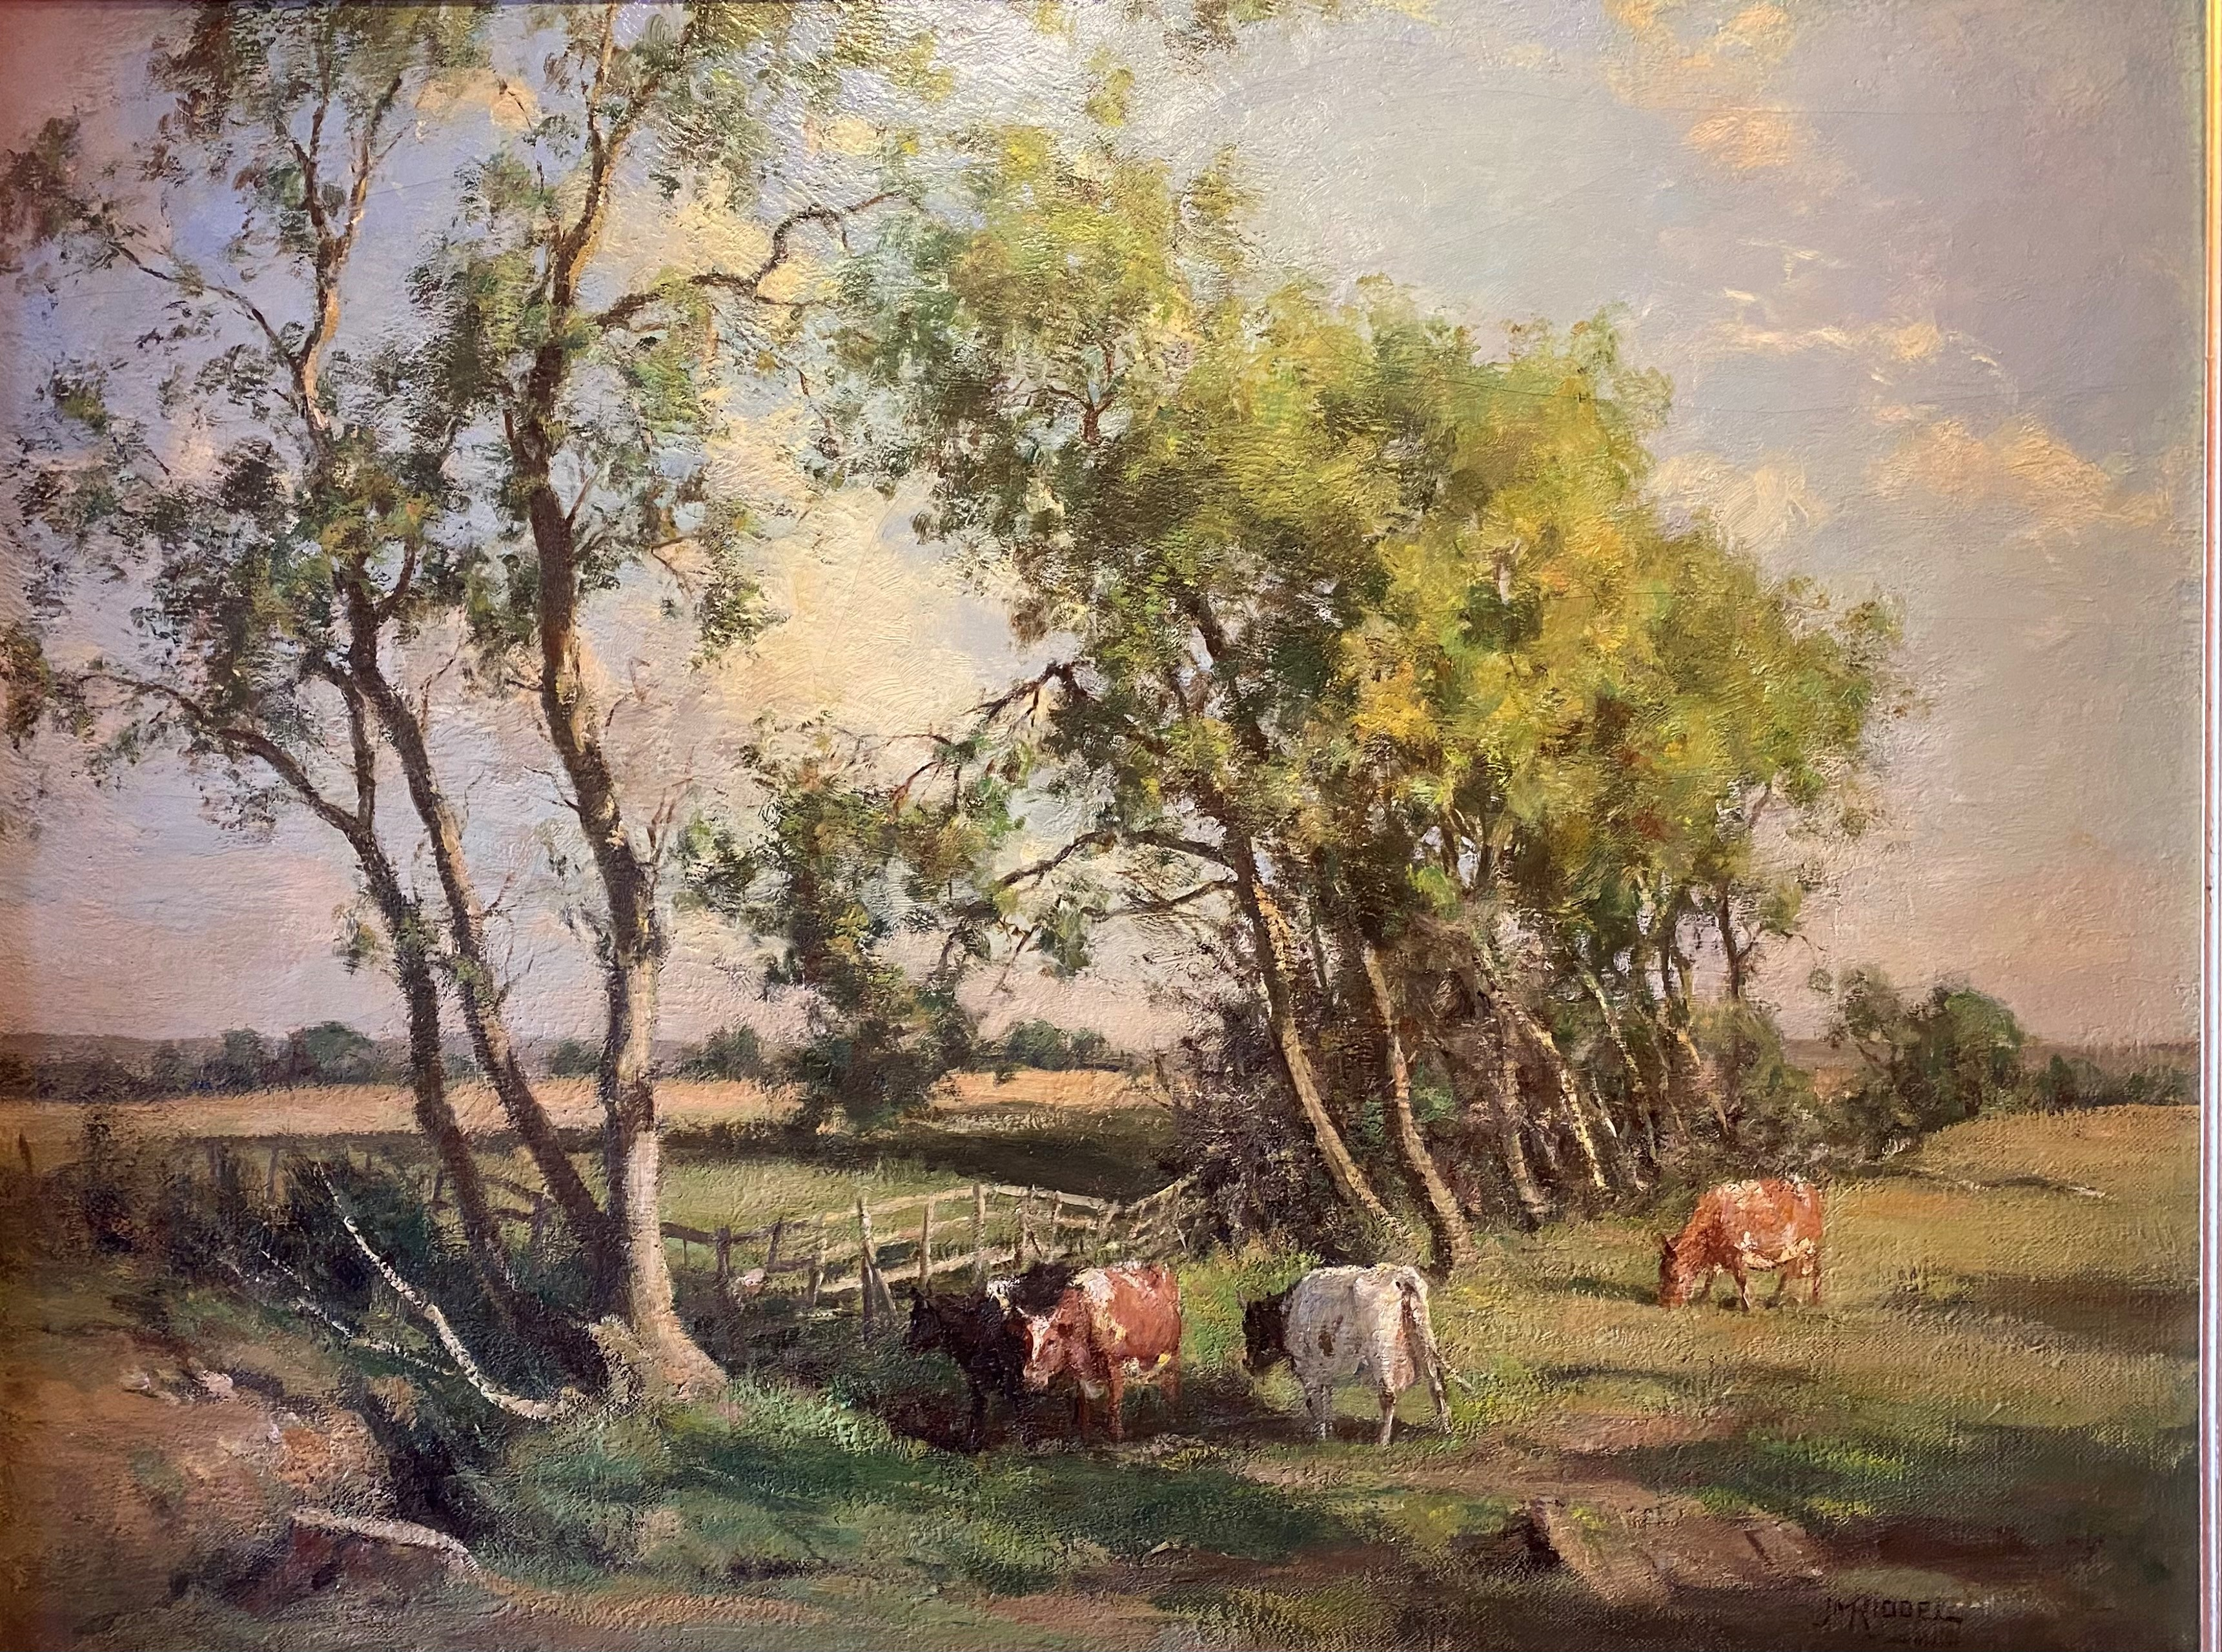 Large James Alick Riddell RSA (1857 - 1928, Scottish) signed oil painting cattle in Summer pasture - Image 2 of 5